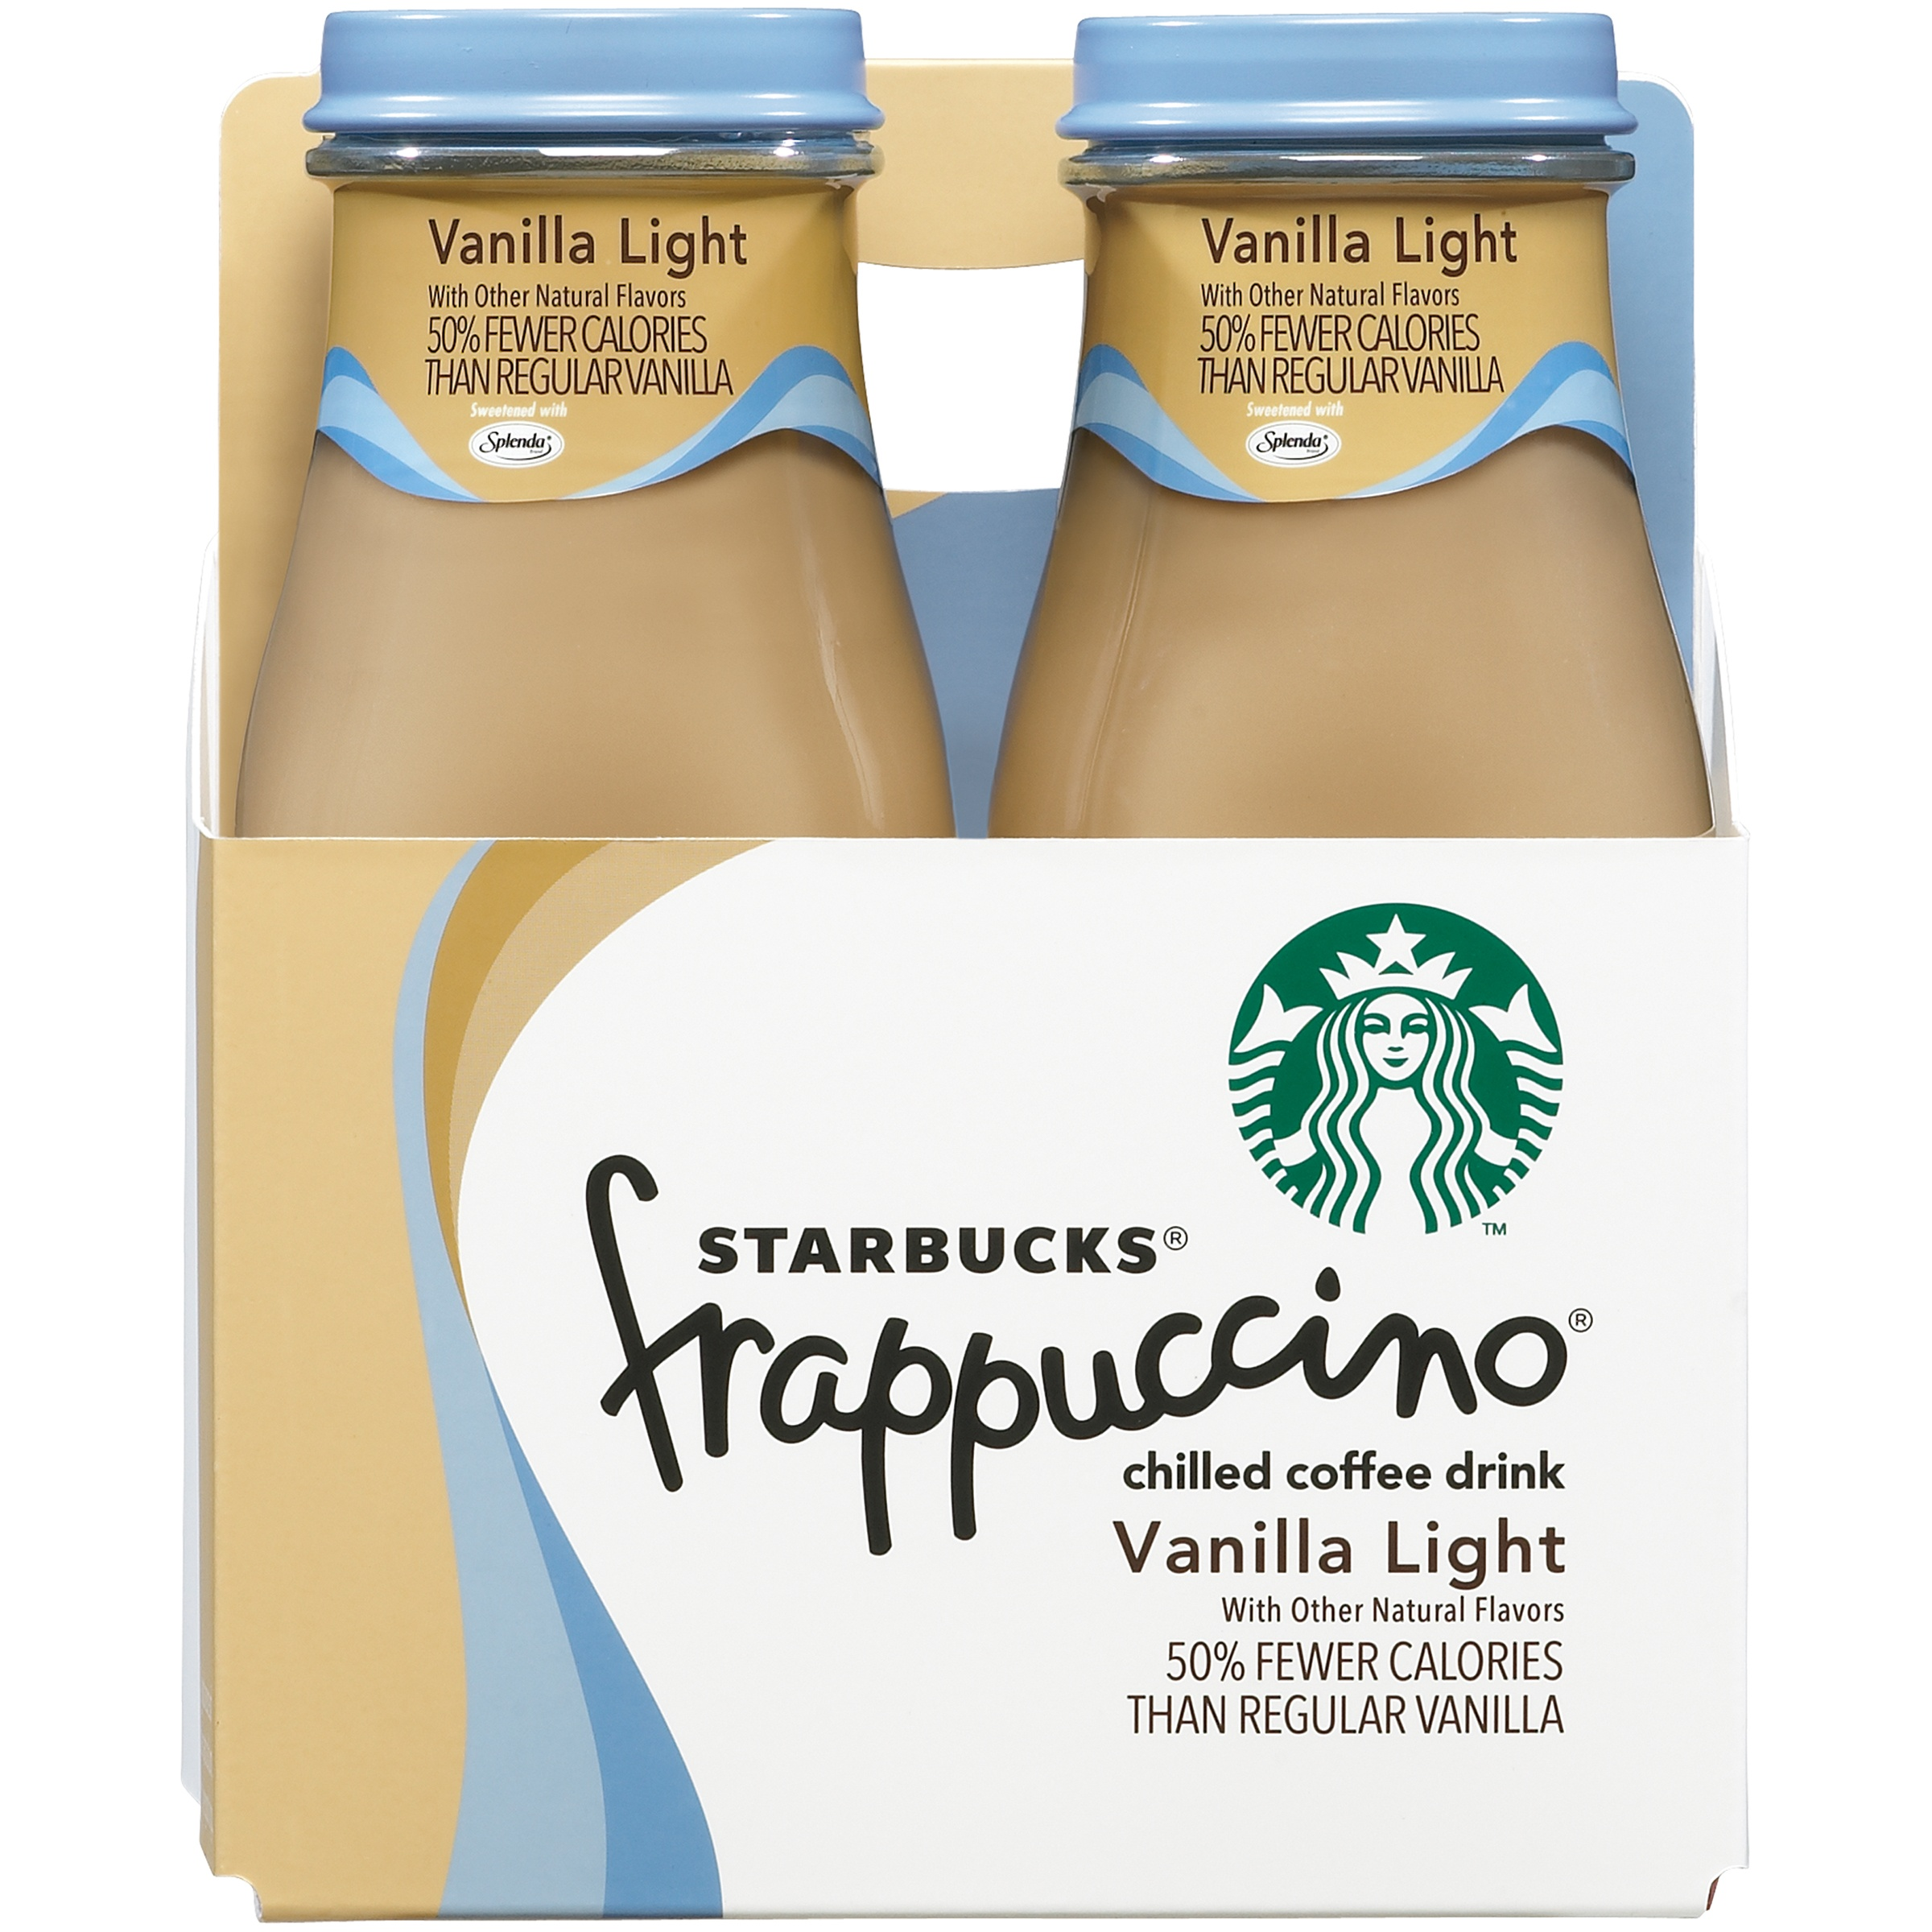 Starbucks Frappuccino Coffee Drink, Vanilla Light, 9.5 Fl Oz, 4Ct